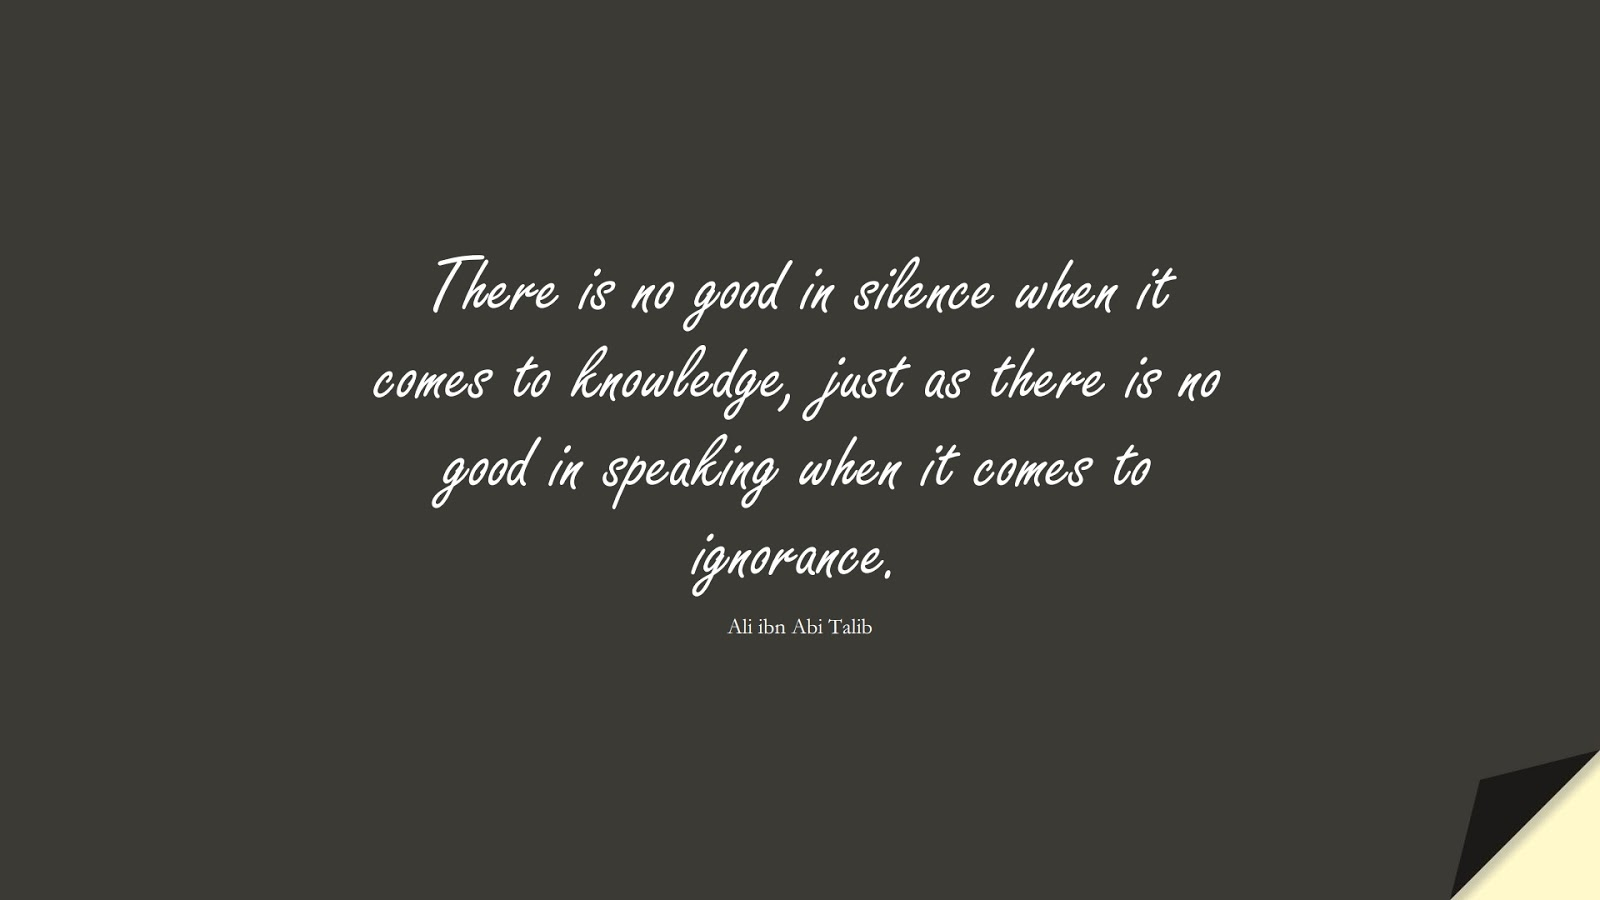 There is no good in silence when it comes to knowledge, just as there is no good in speaking when it comes to ignorance. (Ali ibn Abi Talib);  #AliQuotes